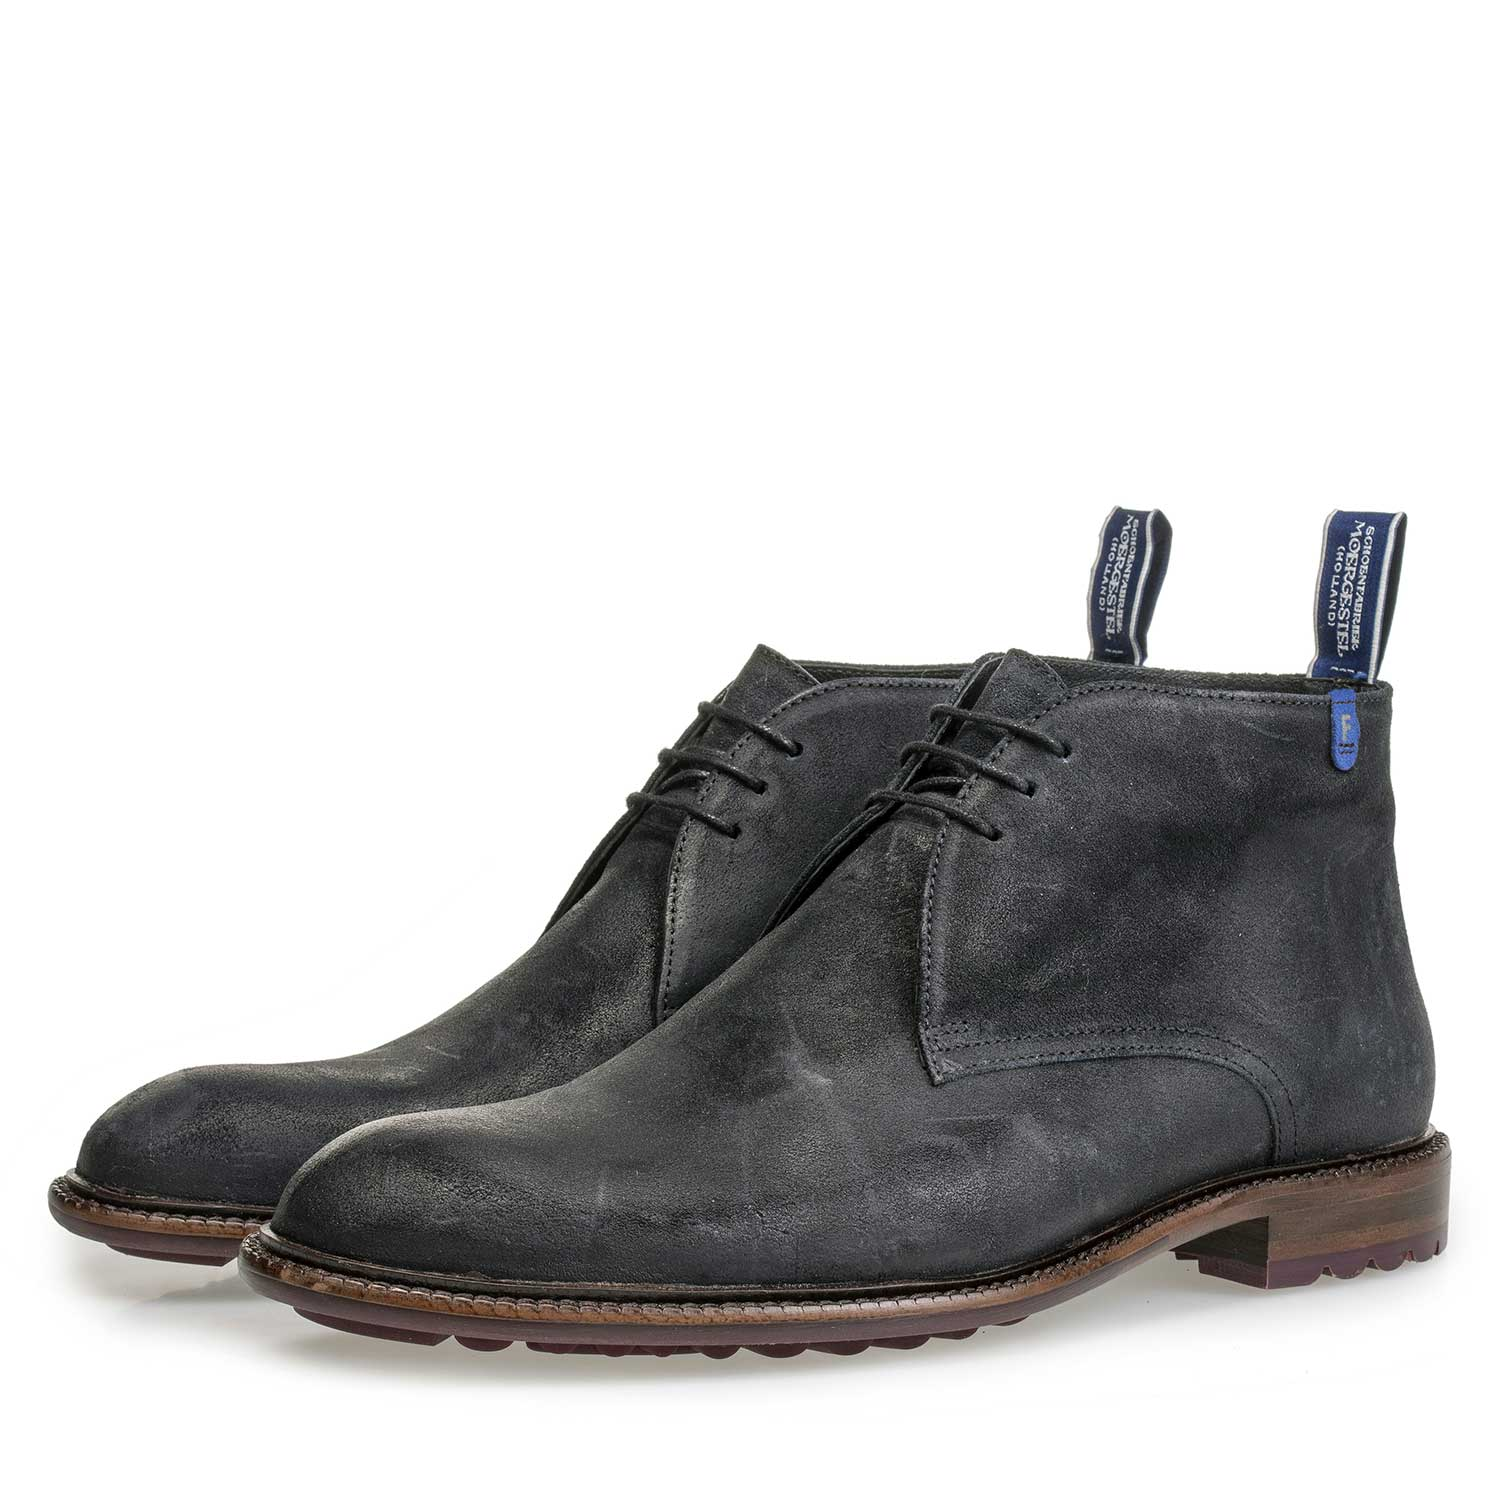 10203/03 - Dark blue suede leather lace boot